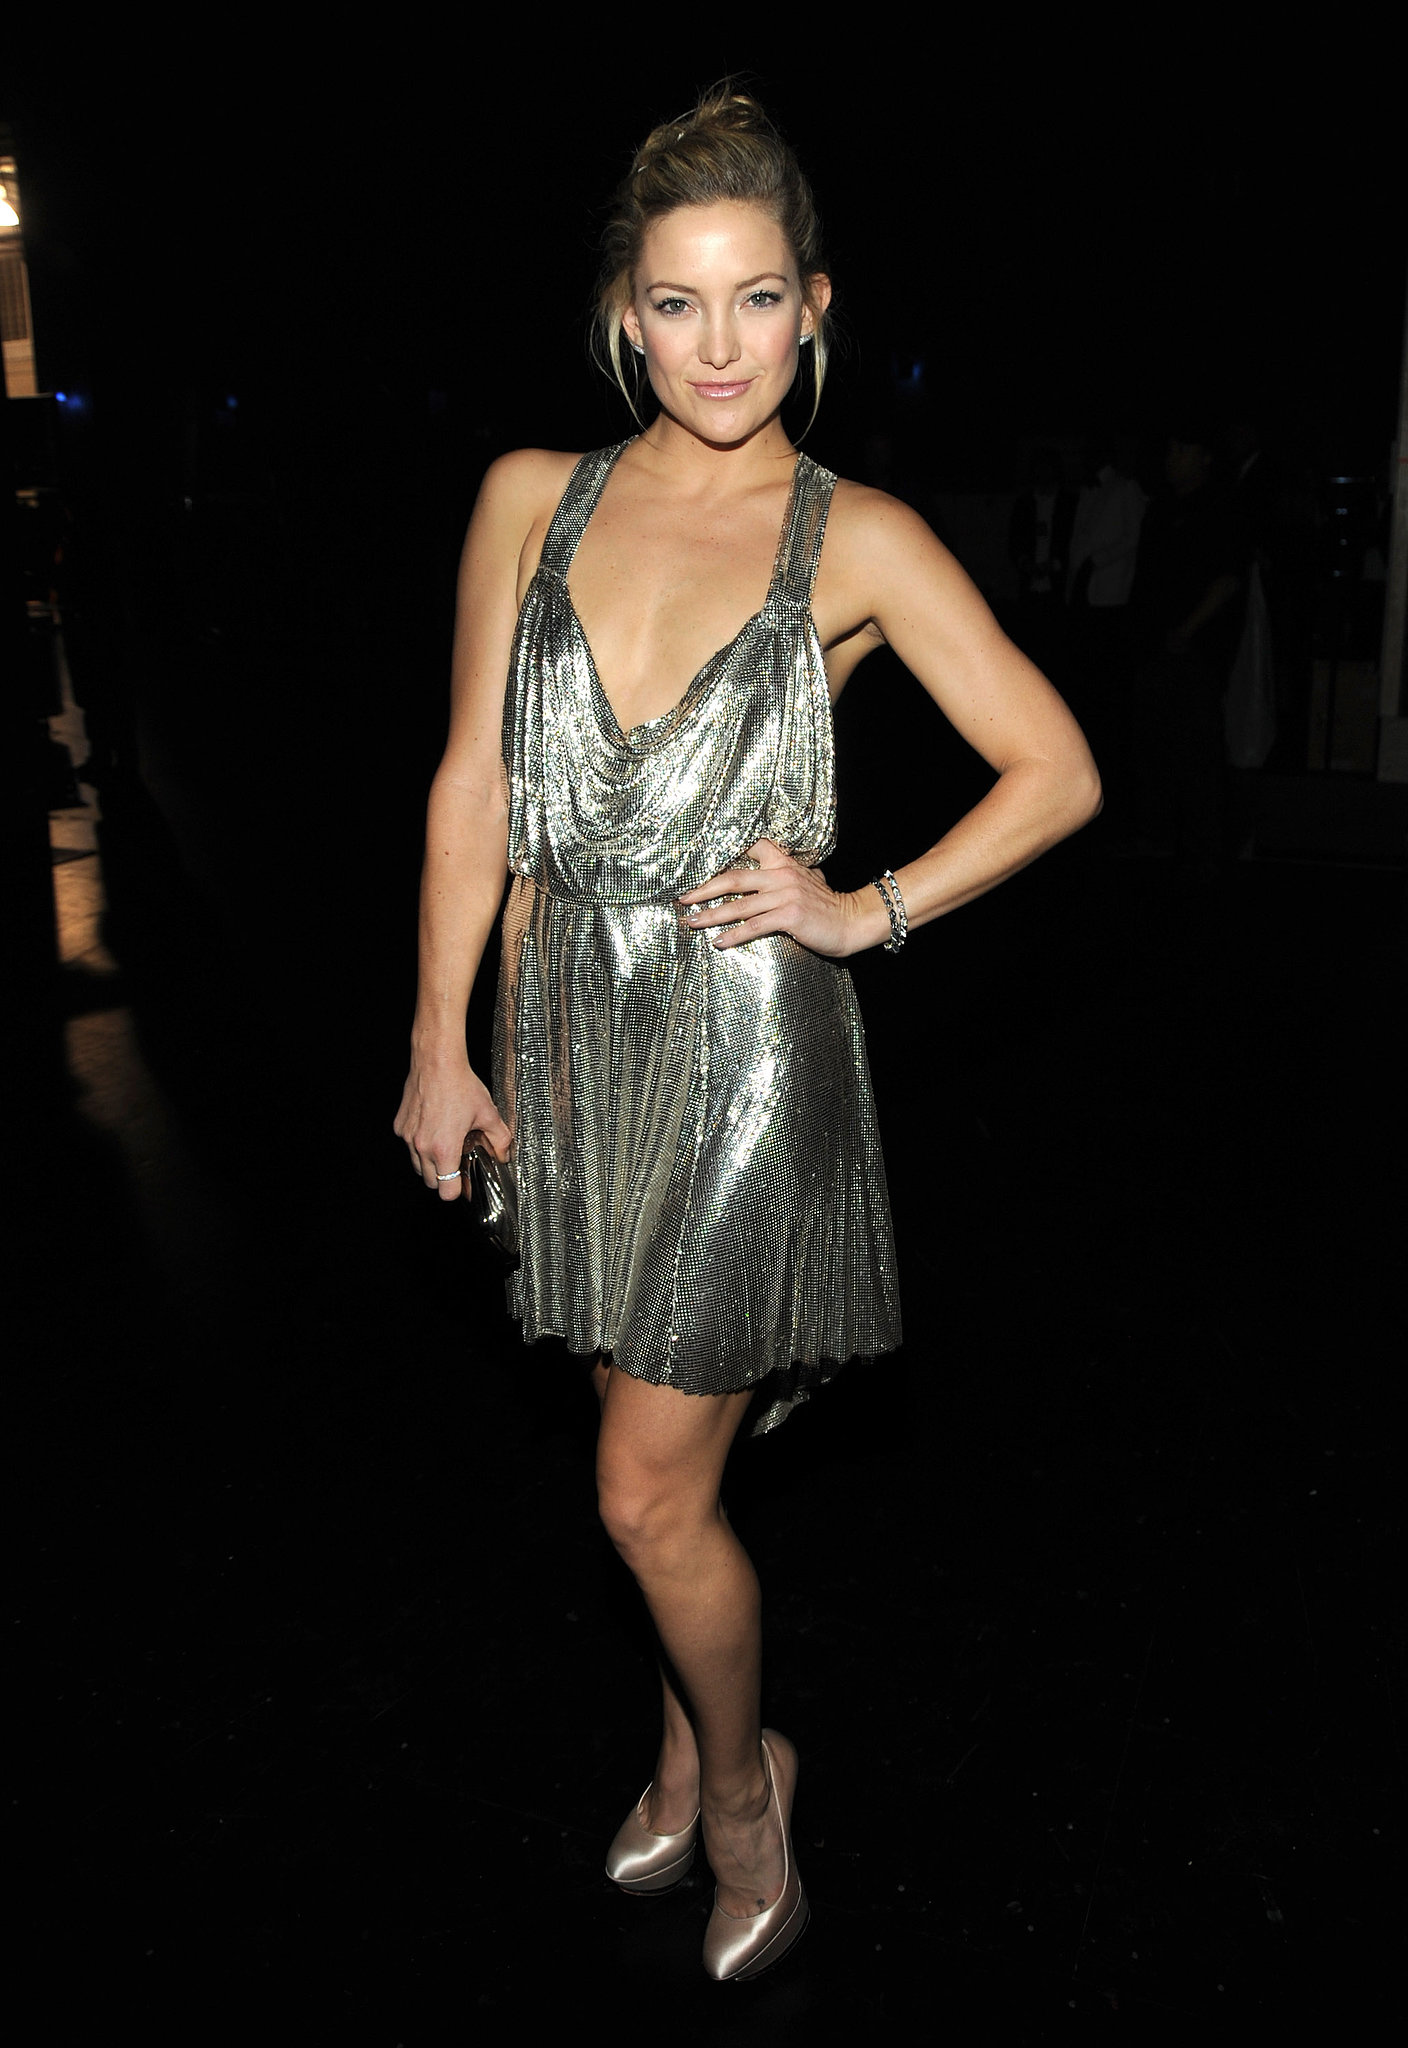 Kate Hudson posed backstage in a sexy metallic dress in 2009.